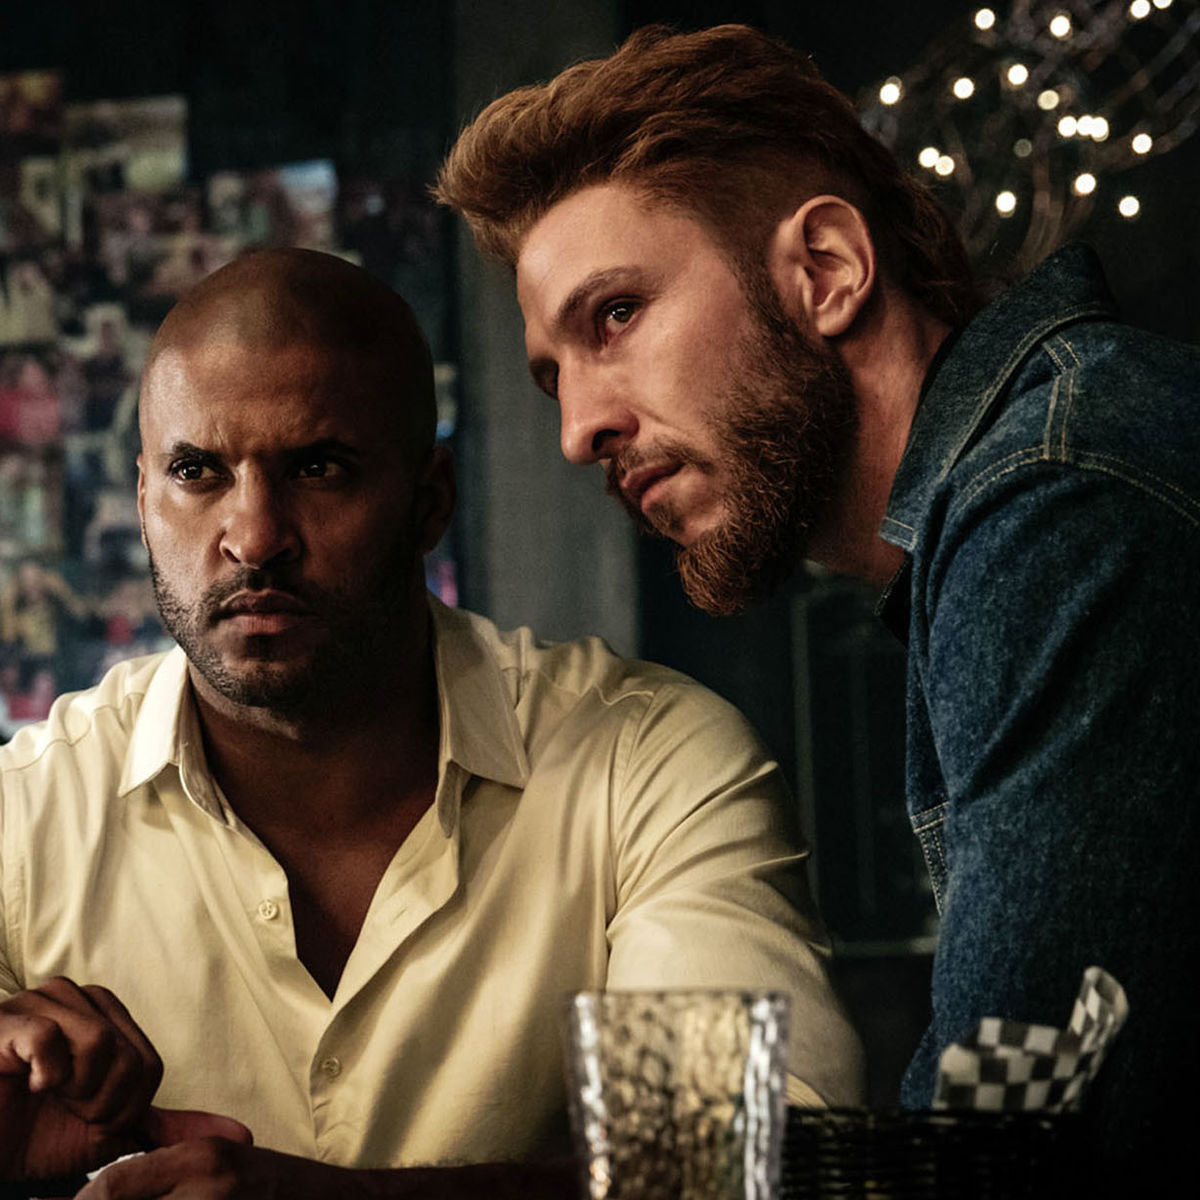 NYCC: Season Two Trailer Arrives For American Gods